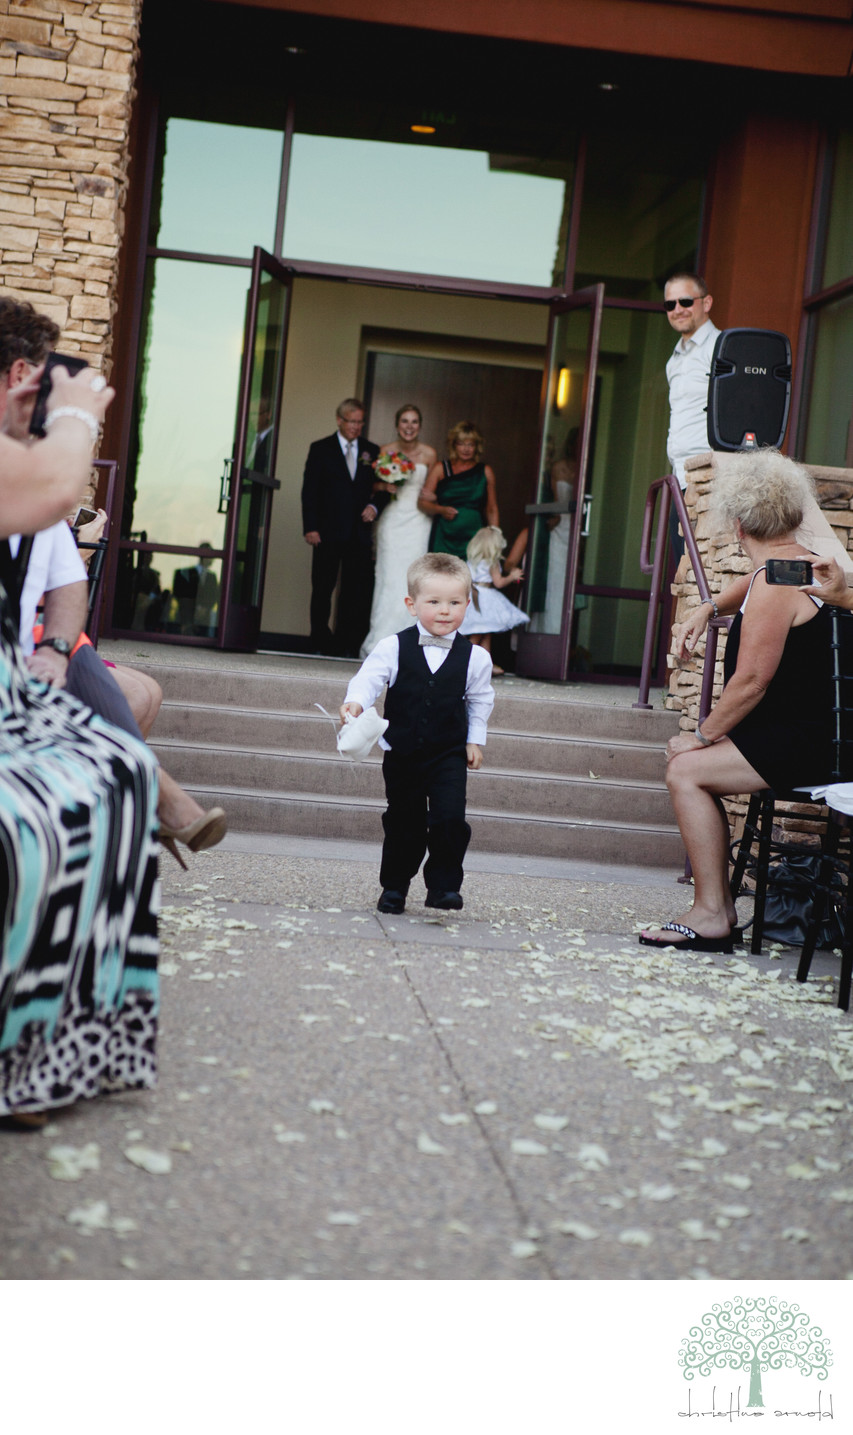 Cute Ring Bearer at Wedding Desert Willow Golf Course